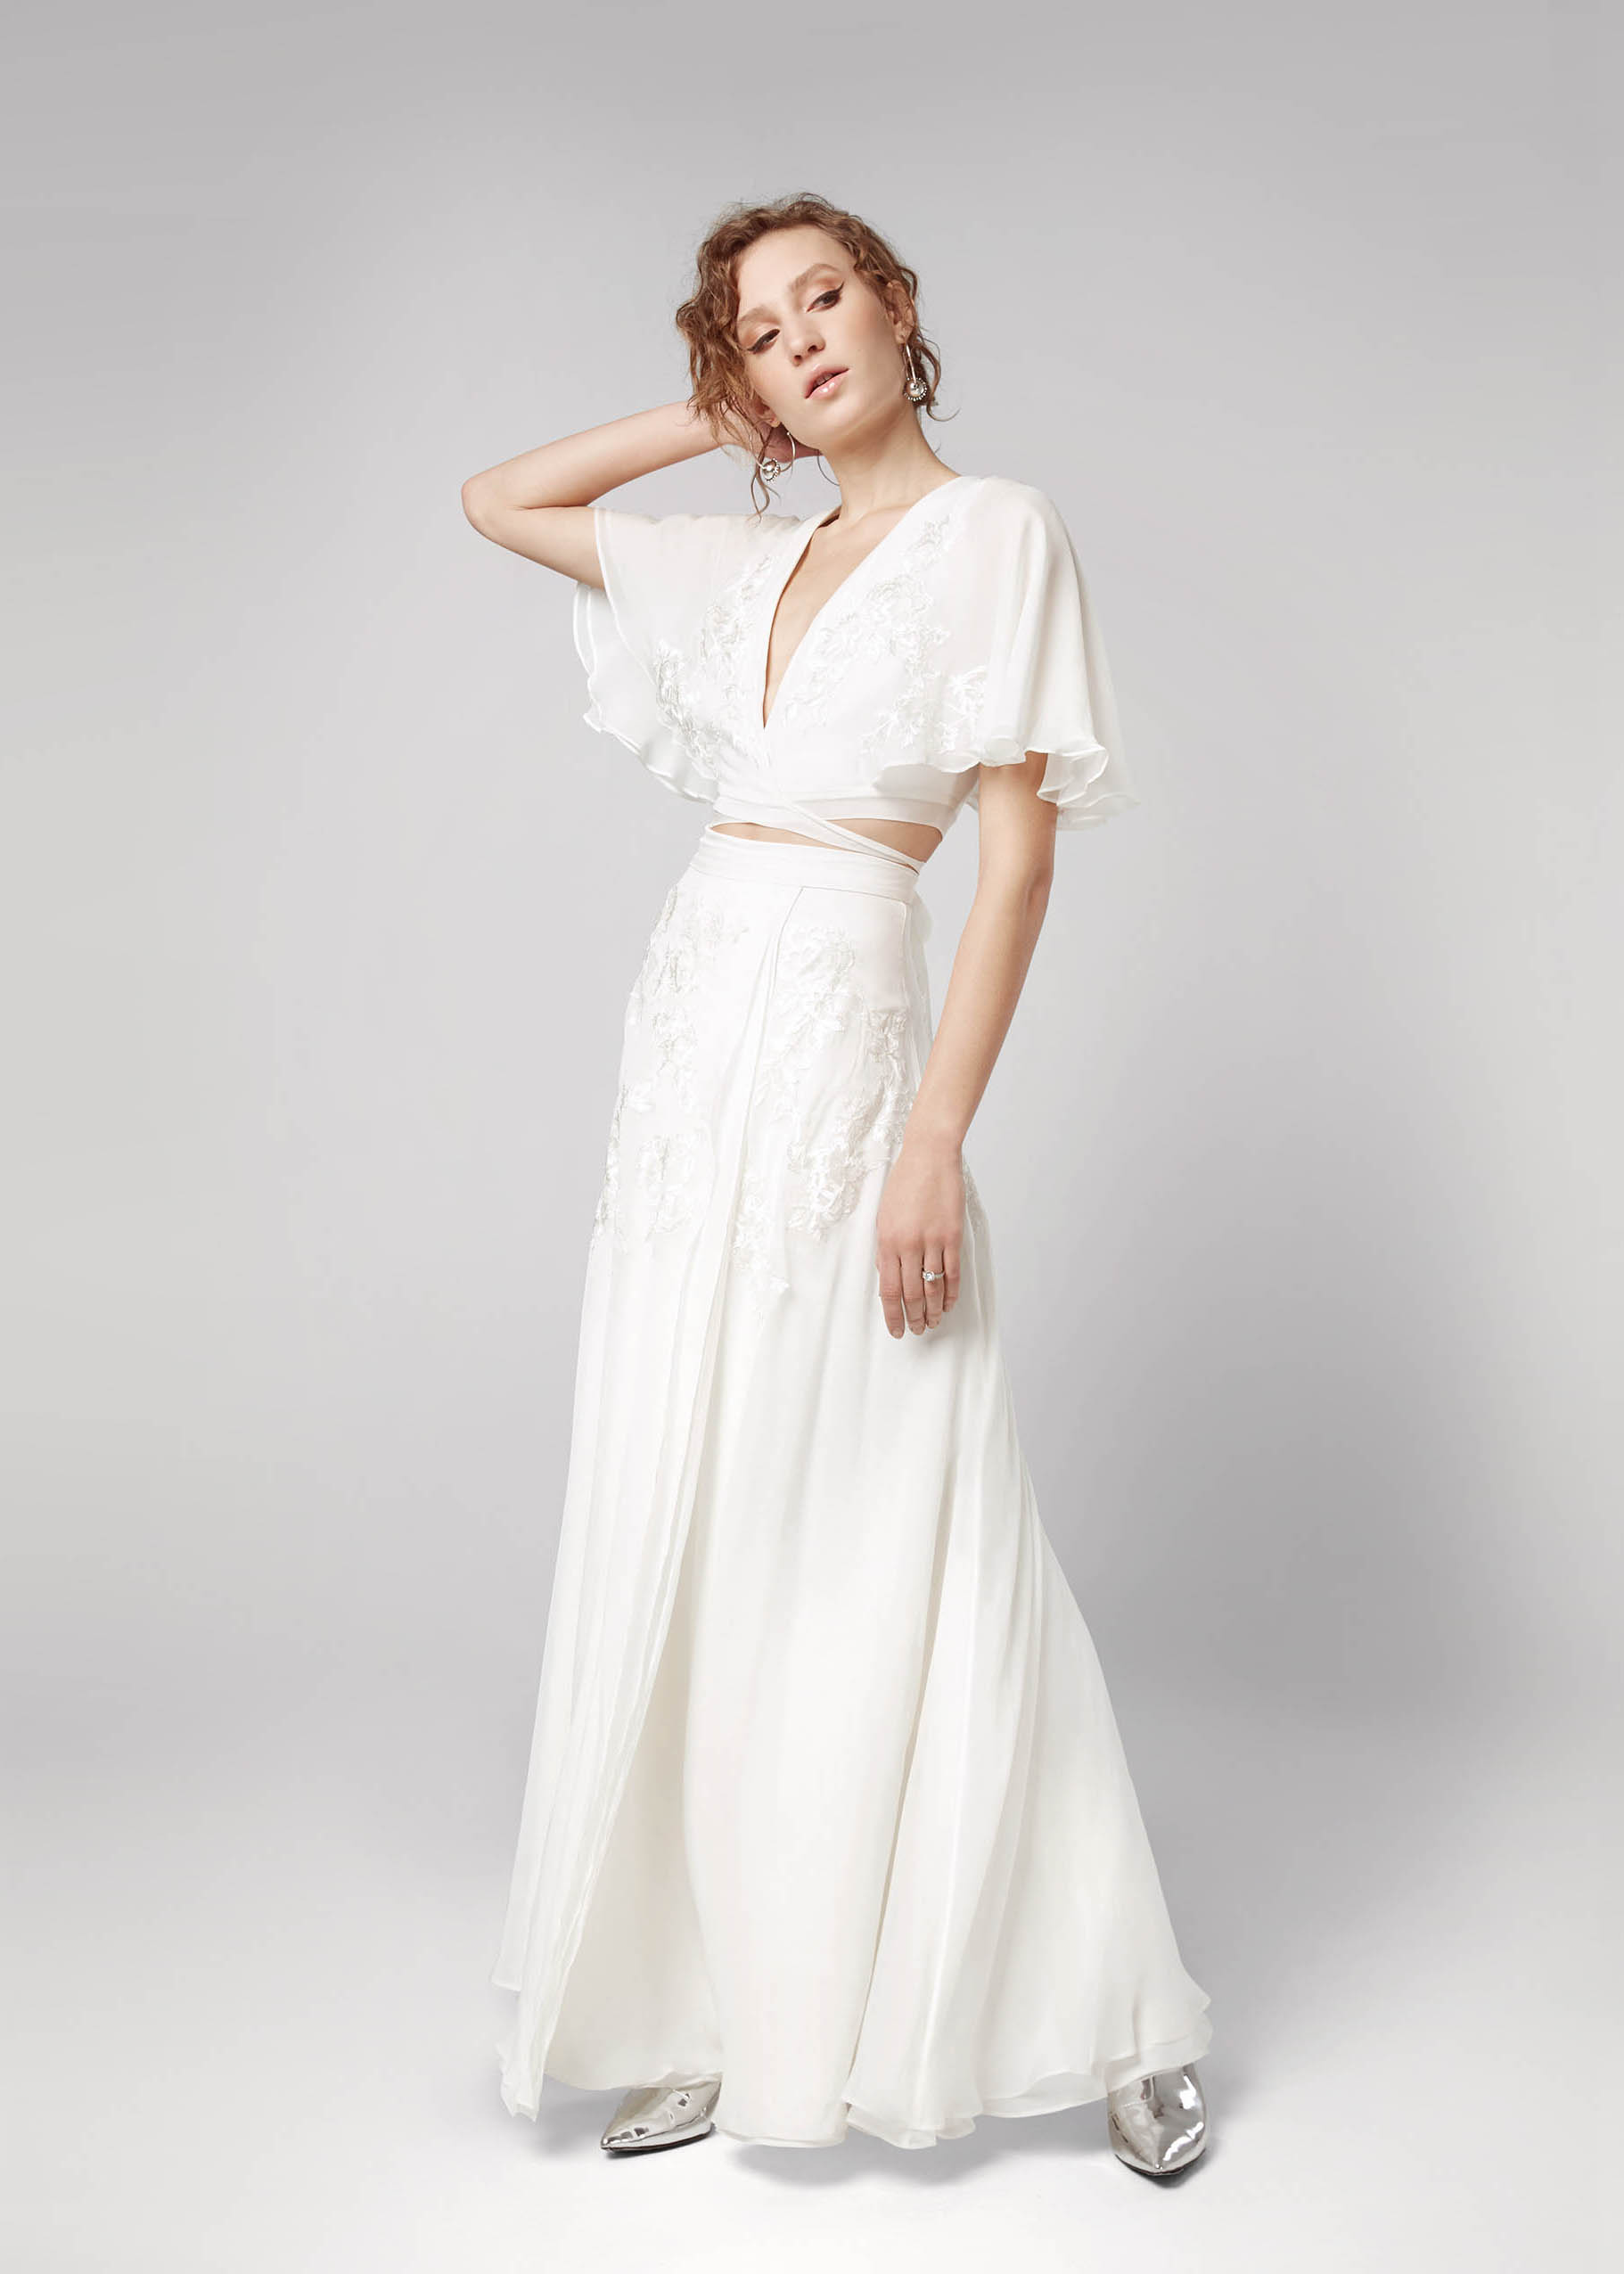 Cheap Wedding Gowns Toronto: Where To Buy Affordable Wedding Dresses